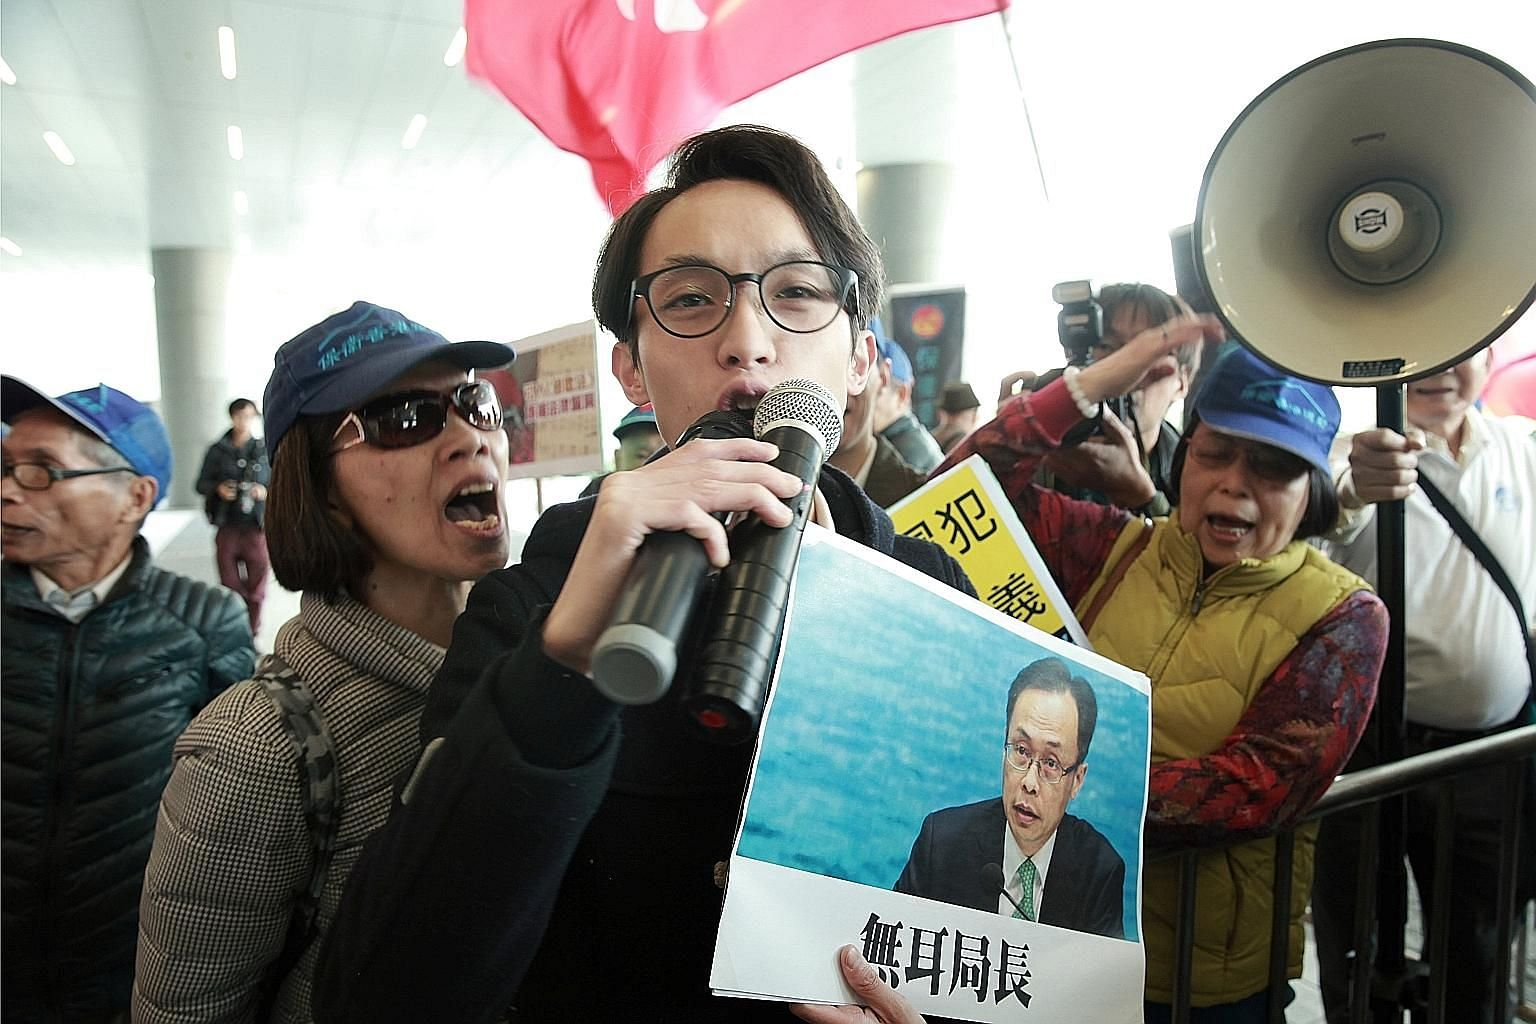 A pro-democracy activist holding a sign showing Secretary for Constitutional and Mainland Affairs Patrick Nip in Hong Kong yesterday.